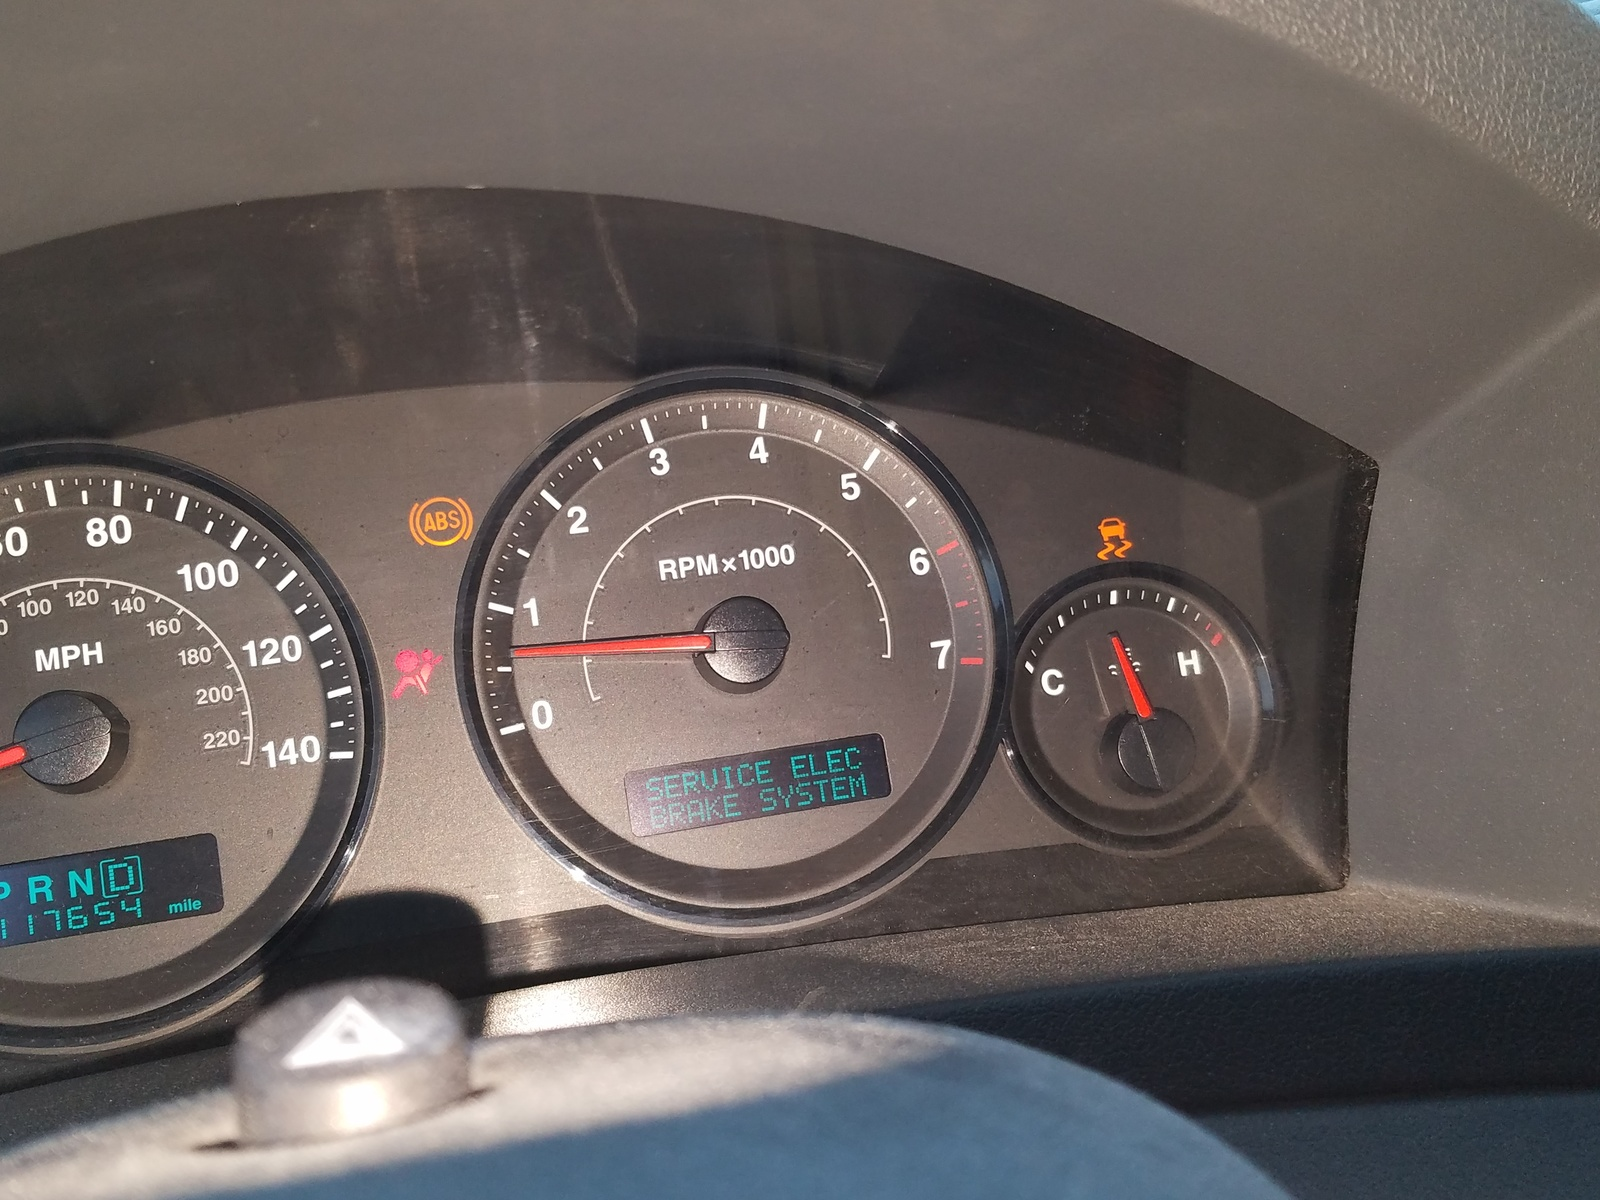 jeep grand cherokee questions - my warning light says to service